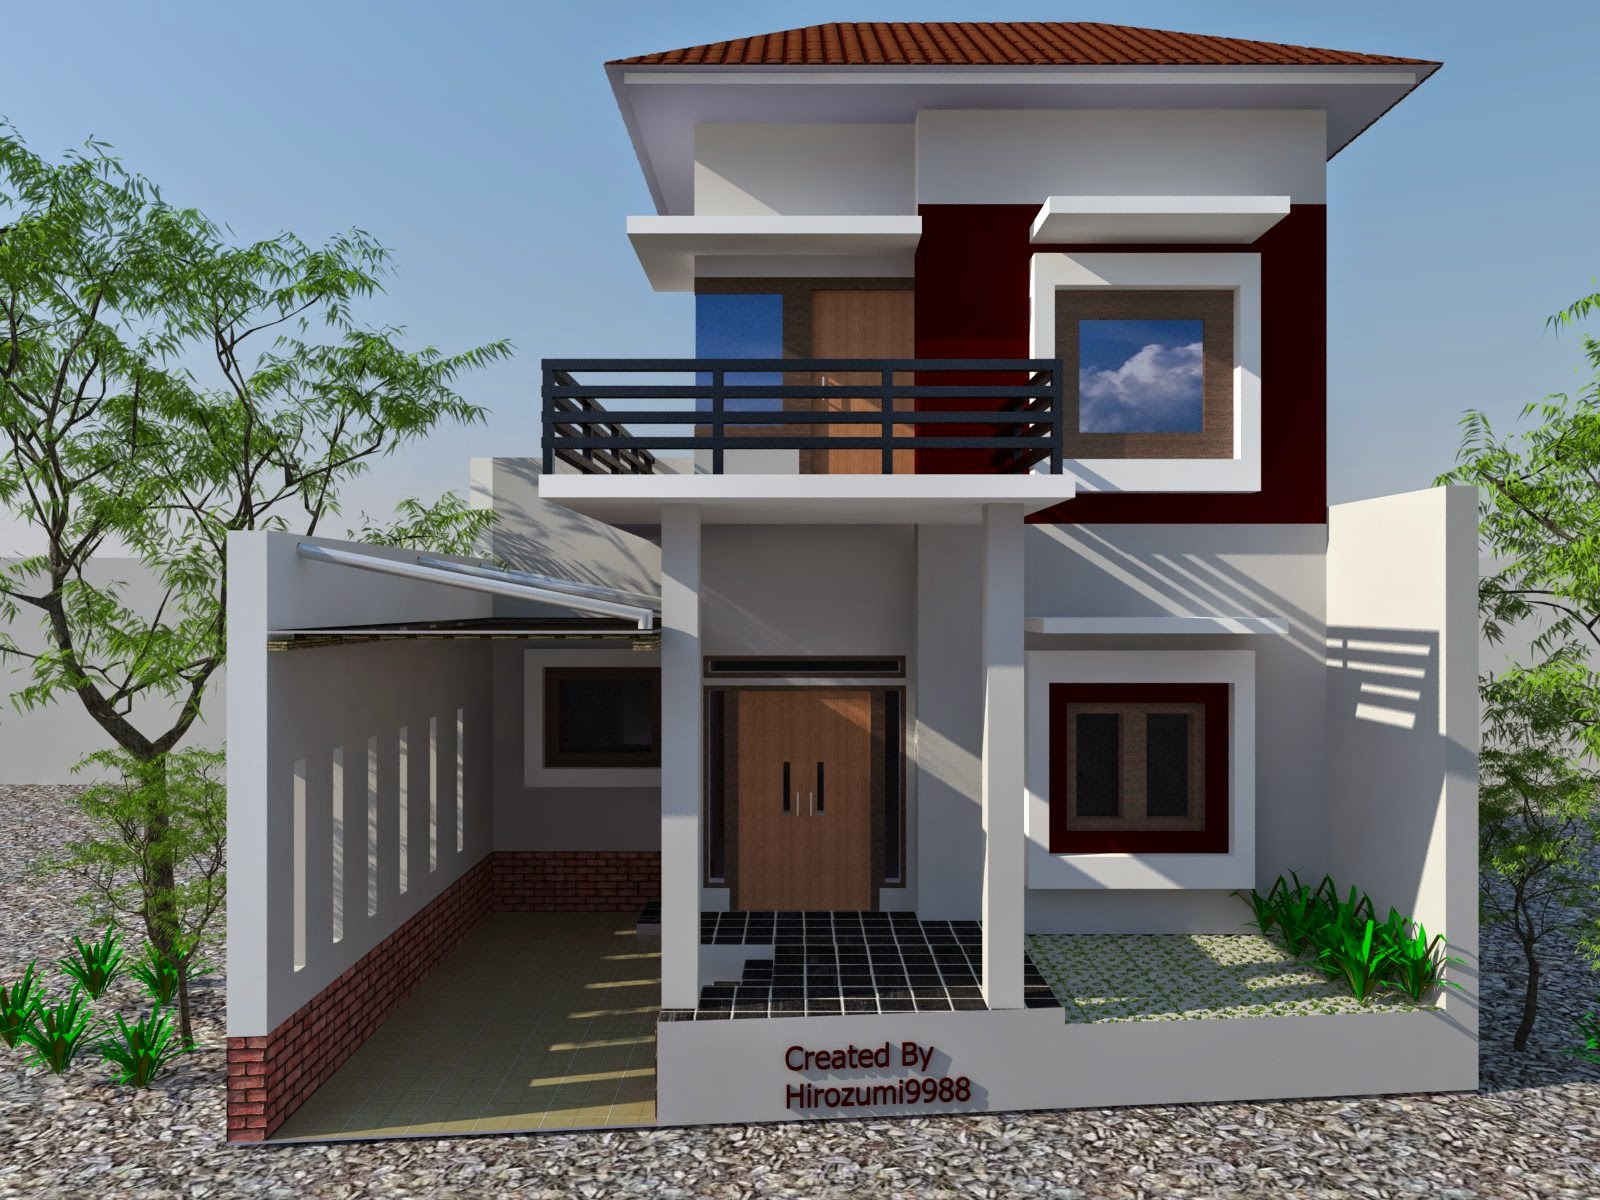 Home Art Design Minimalist House Exterior Design Models